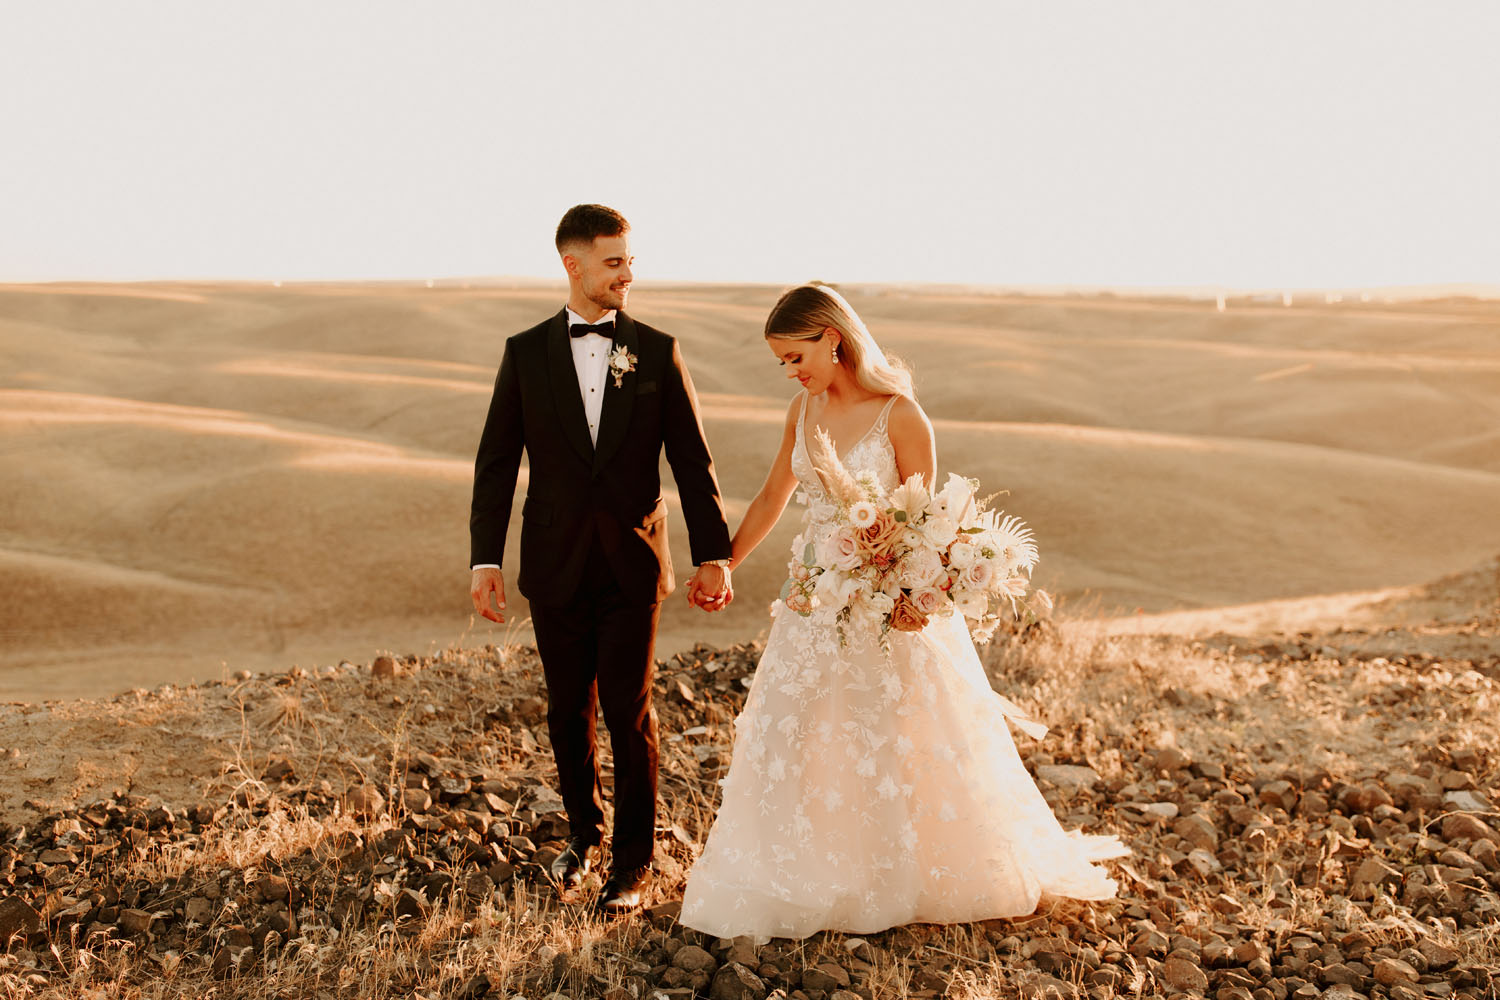 golden hour newlywed portraits